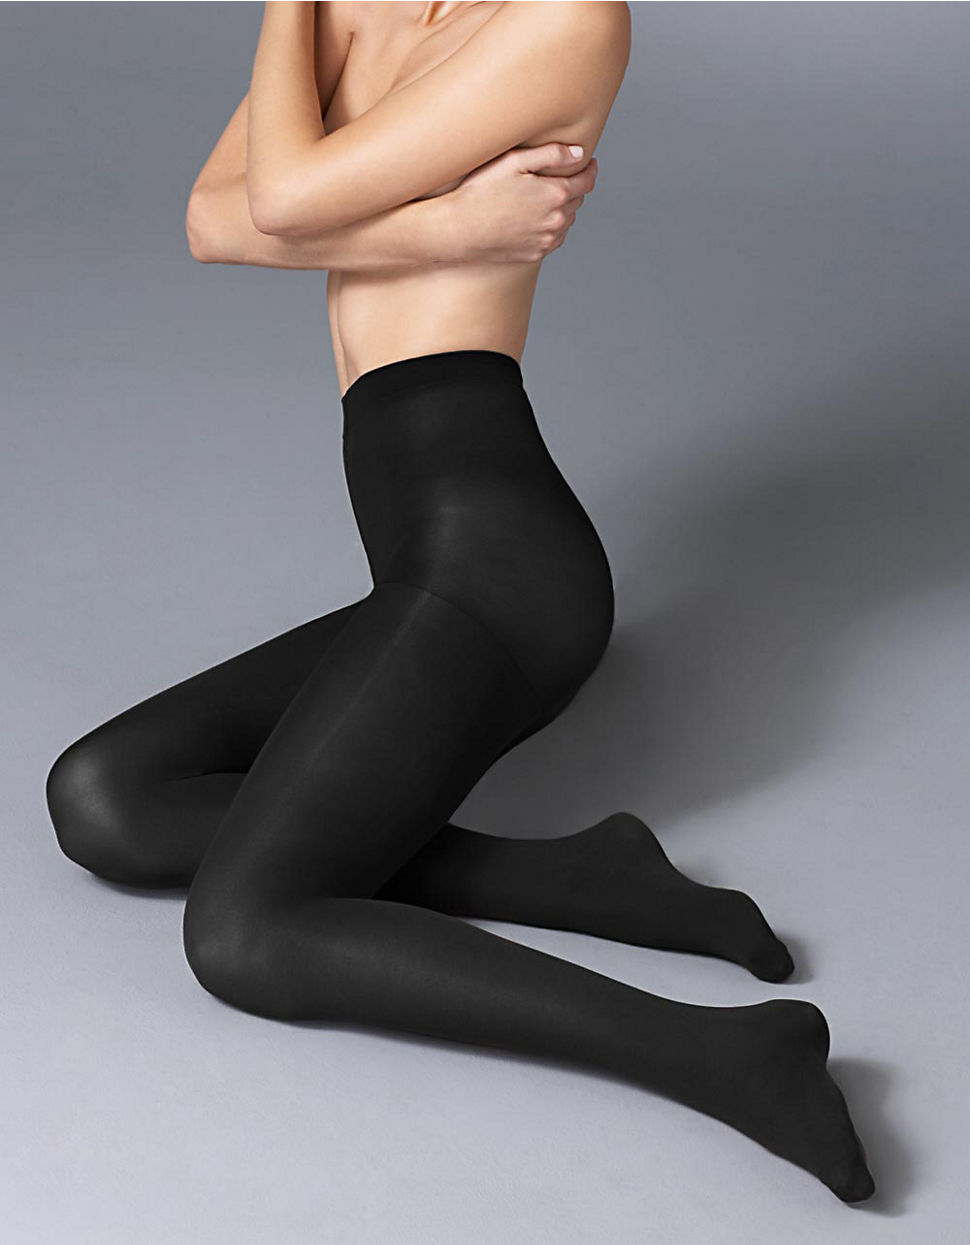 The Best Tights Updated January 29, After spending nearly 60 hours on new research and testing for this year's update, we are sticking with the Wolford Velvet de Luxe 66 as our top pick.